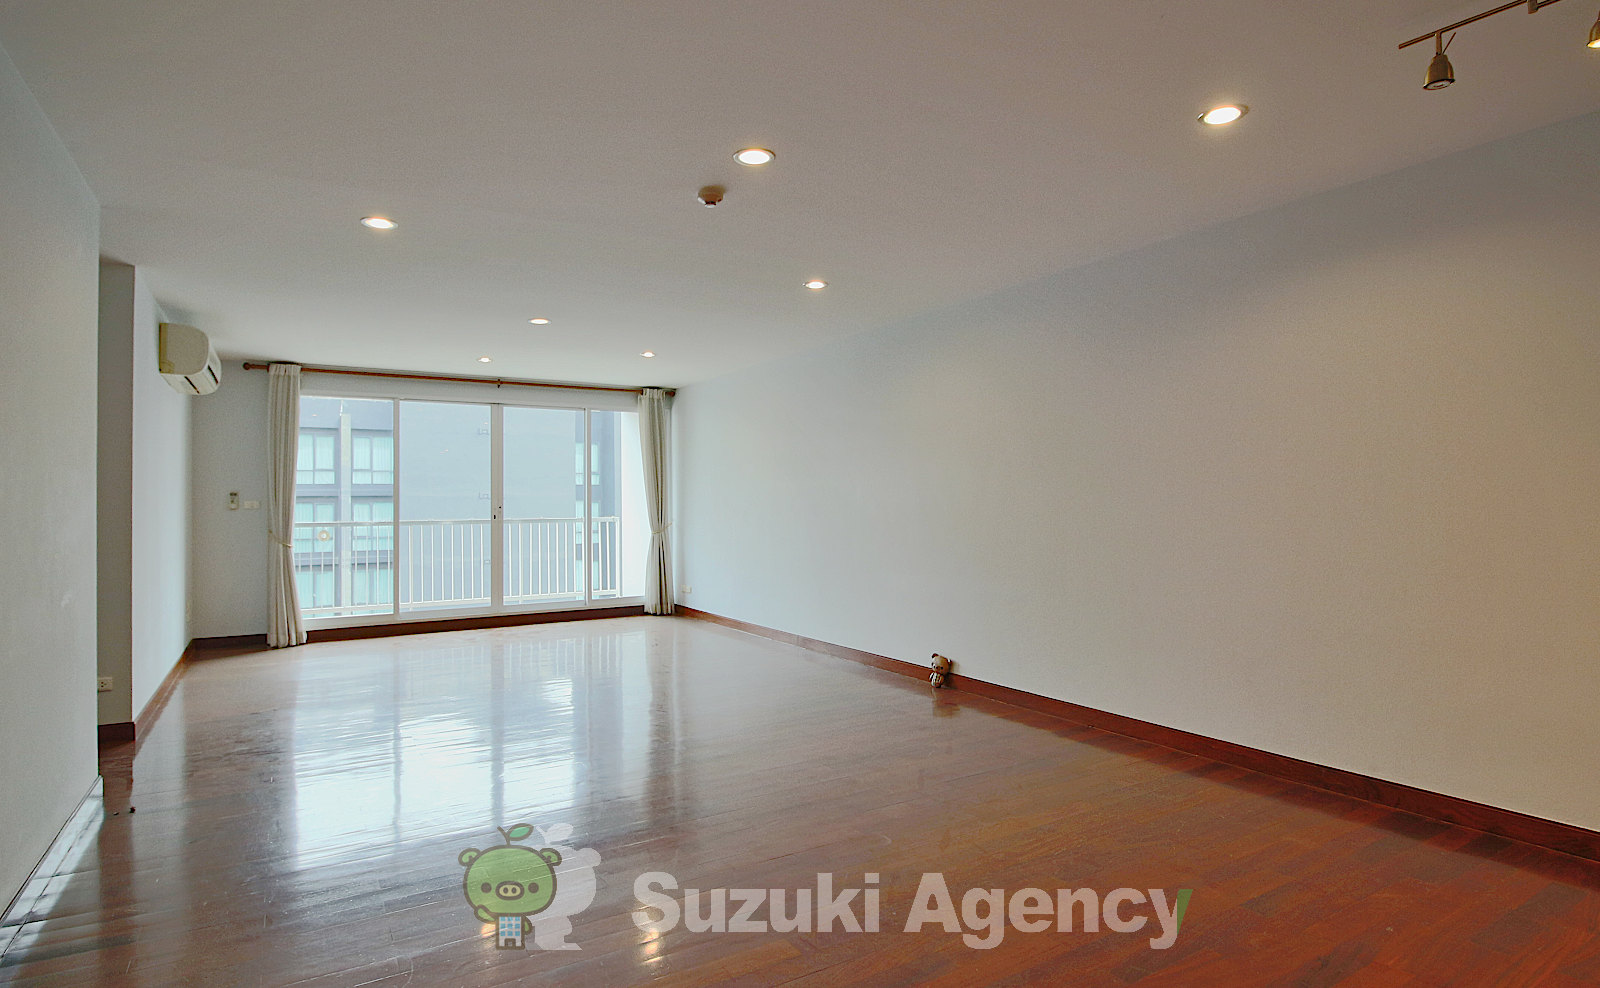 Urbana Sukhumvit 15:2Bed Room Photos No.1